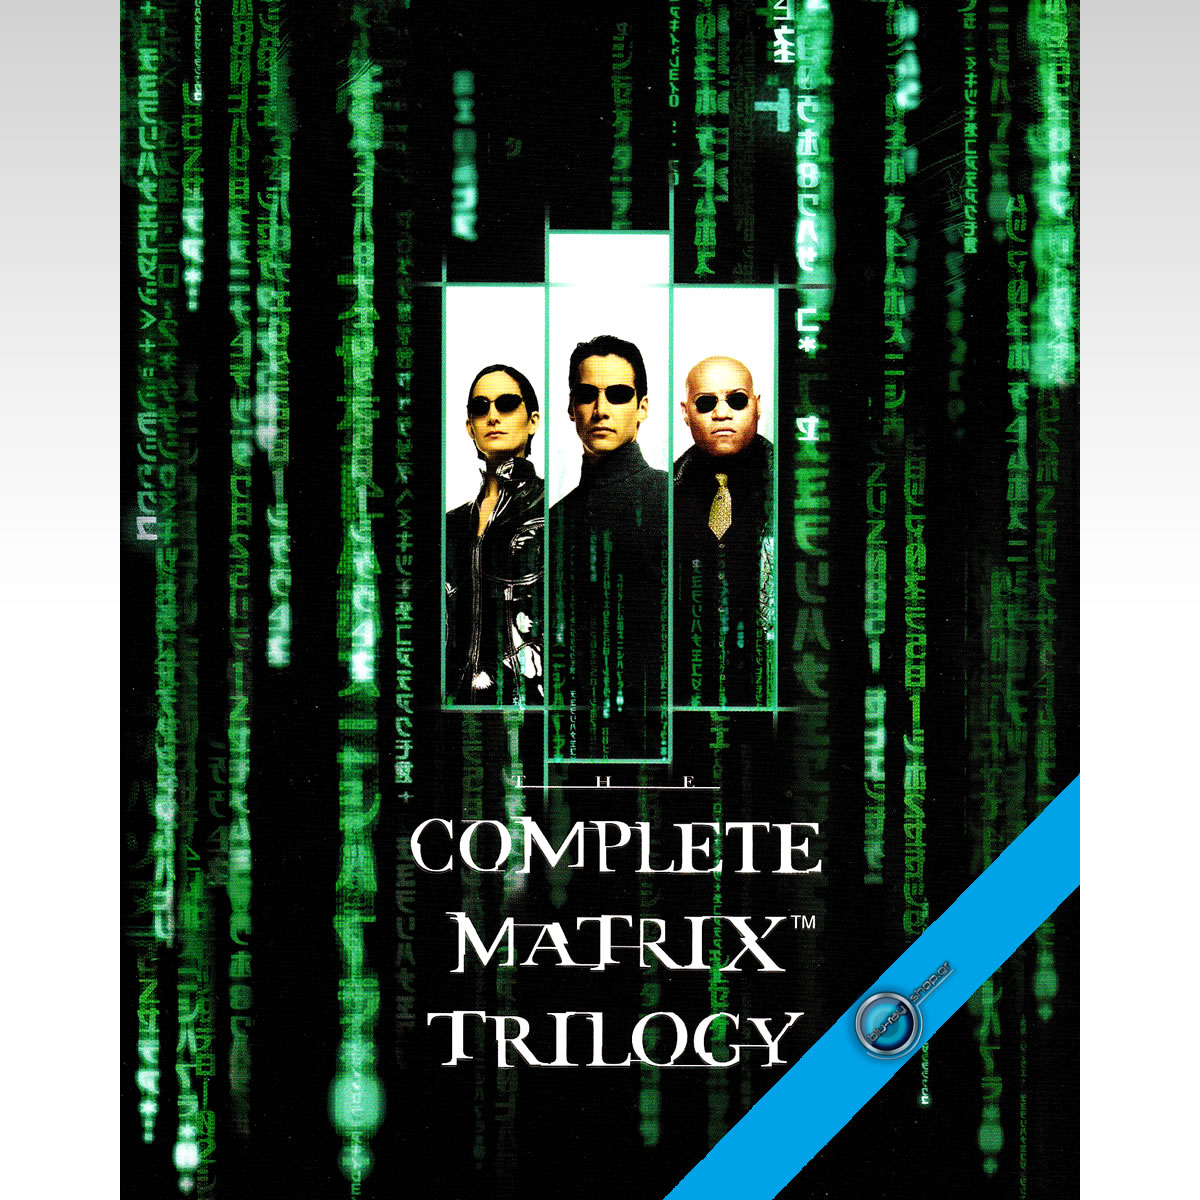 THE COMPLETE MATRIX TRILOGY - MATRIX Η ΤΡΙΛΟΓΙΑ (3 BLU-RAYs)